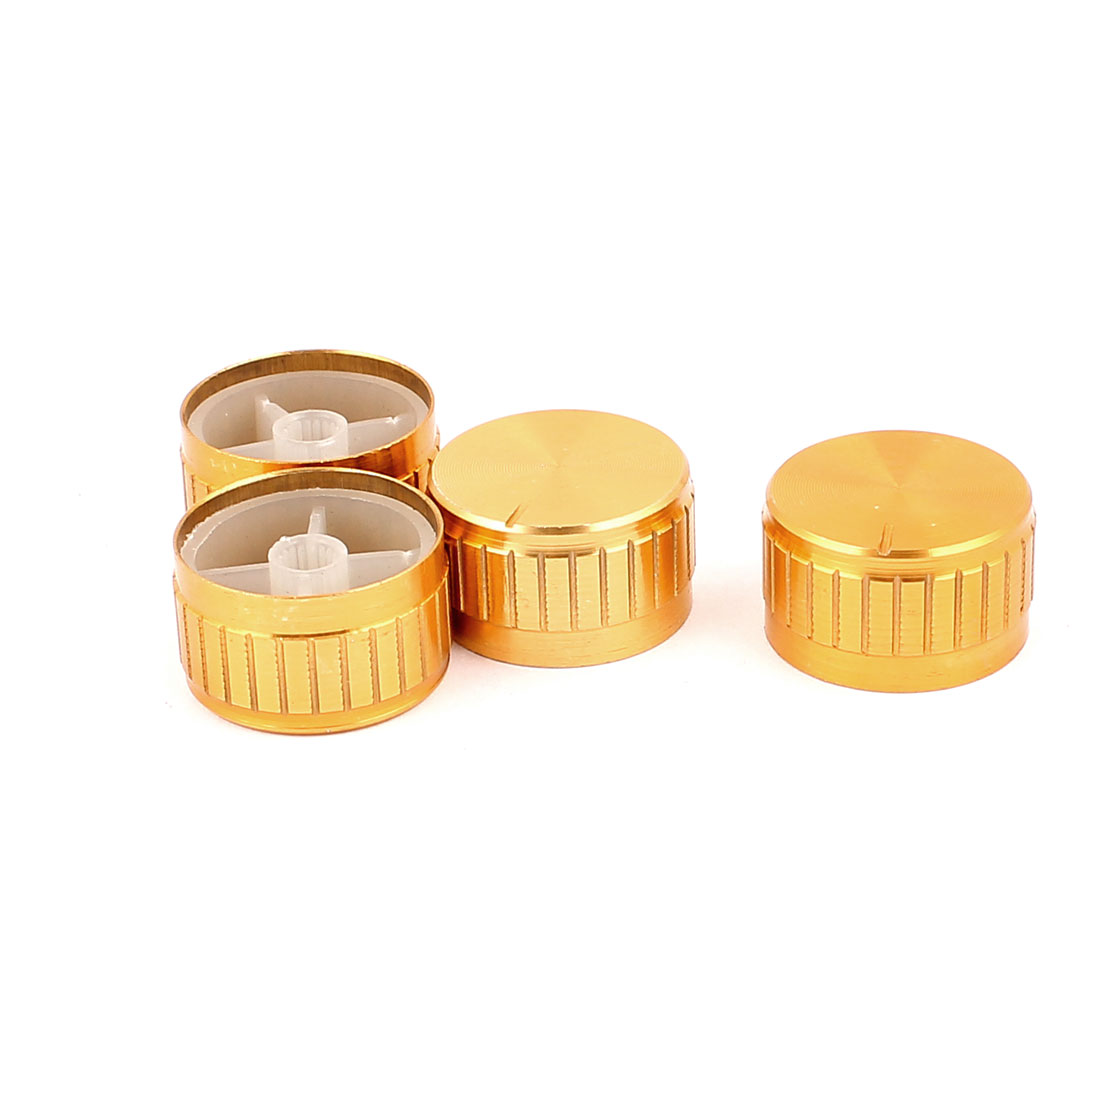 4 Pcs 30mm x 6mm Aluminium Alloy Potentiometer Control Switch Volume Cap Knurled Button Gold Tone